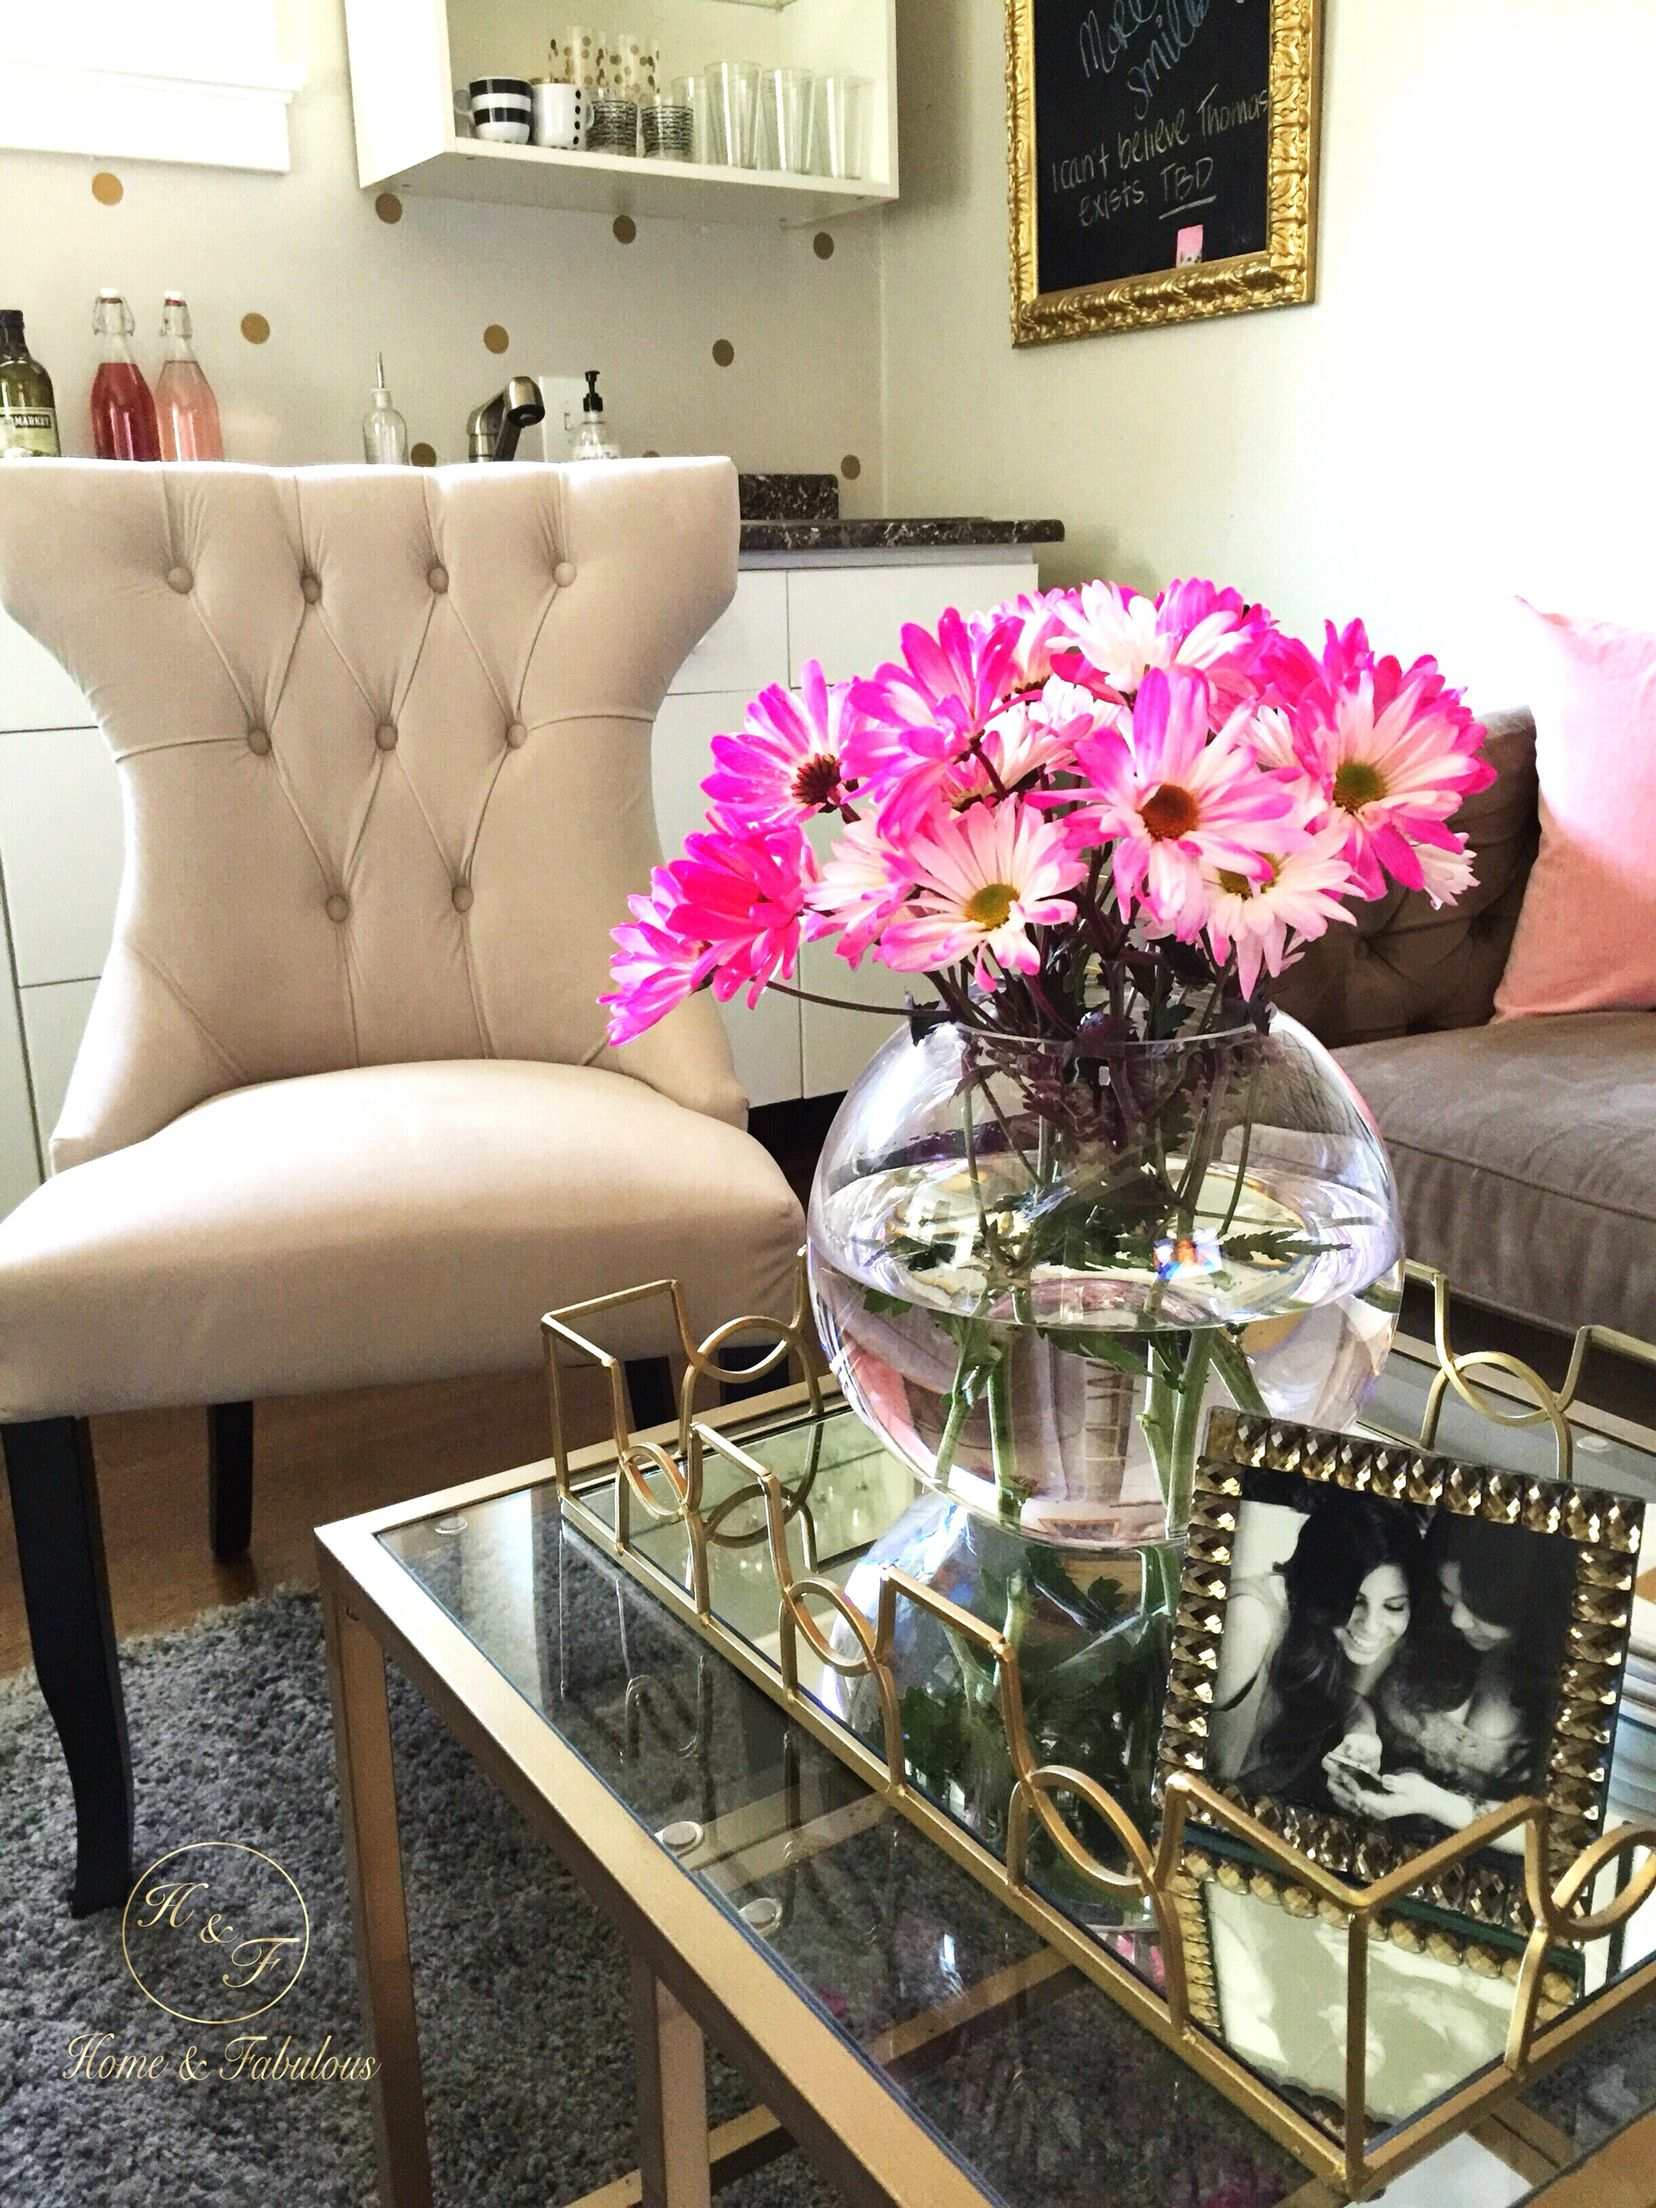 I Love This Neutral Tufted Chair From HomeGoods Because It Adds Elegance To My Living Room